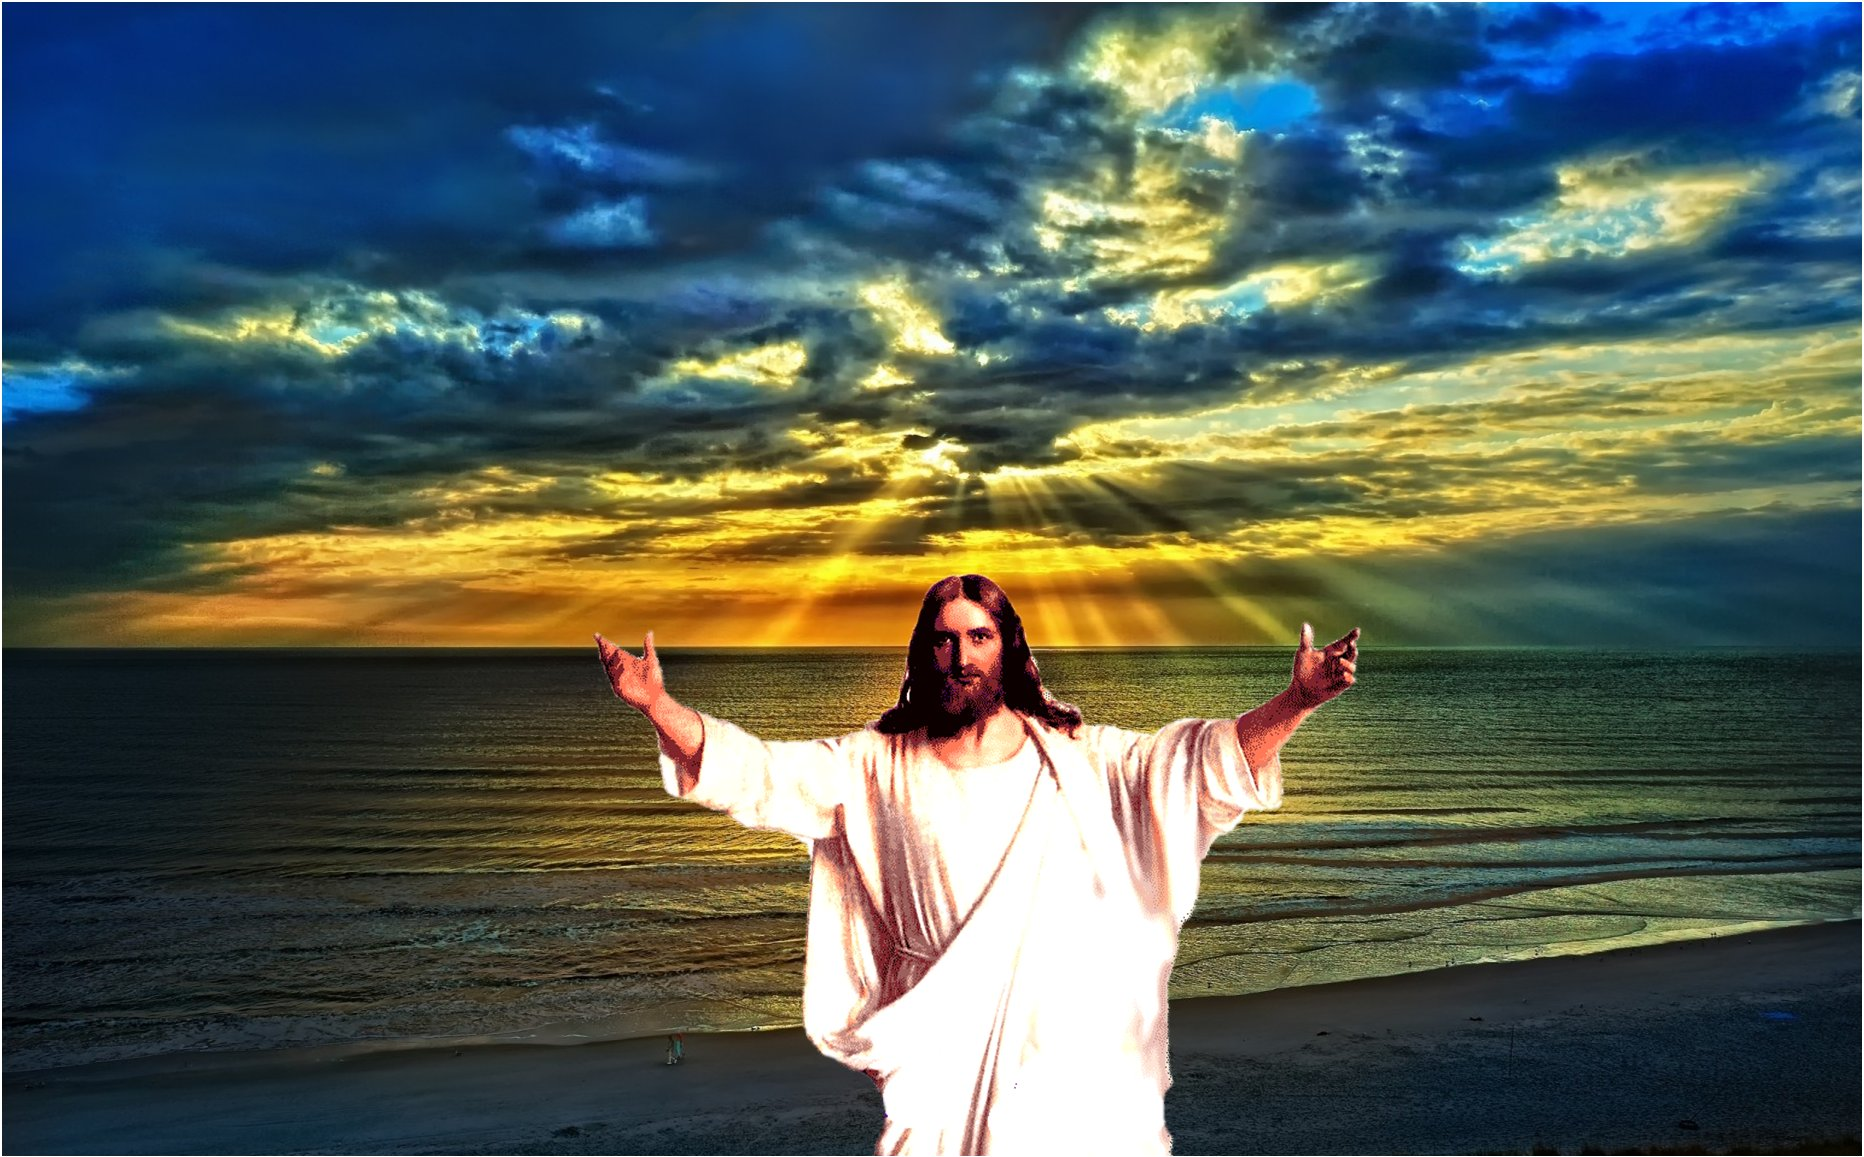 lord jesus wallpapers - photo #24